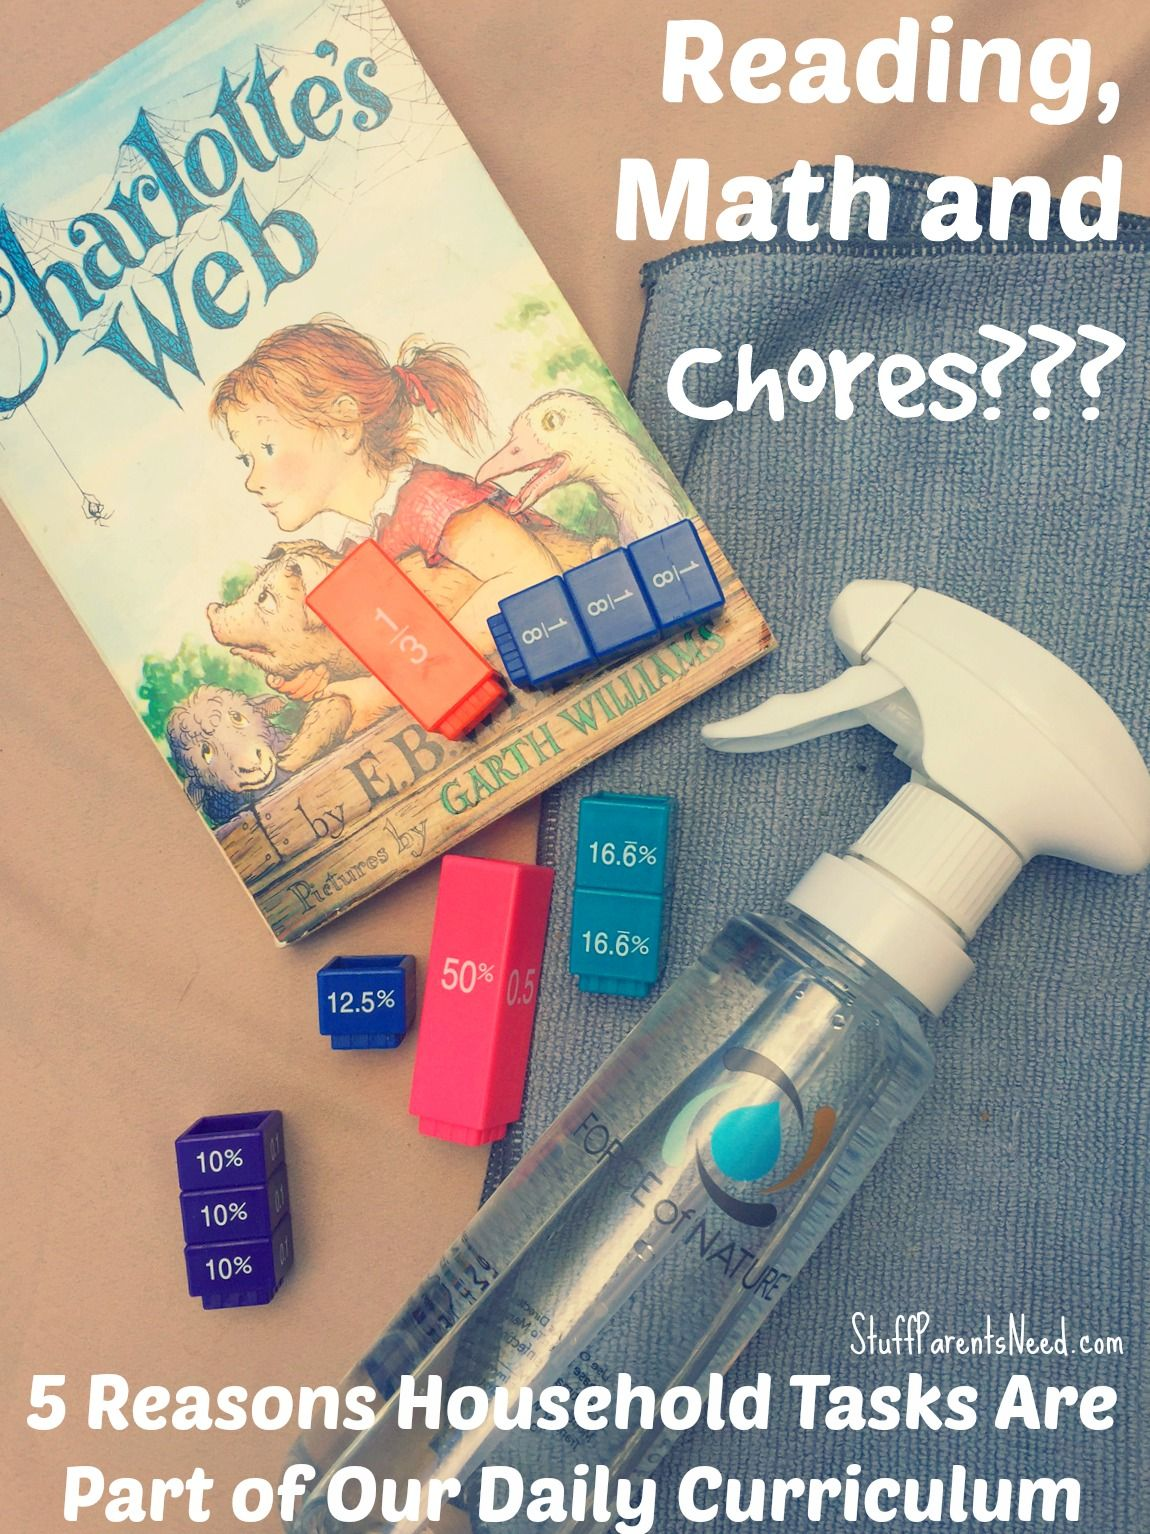 5 Reasons Why Chores Are Considered Part Of The